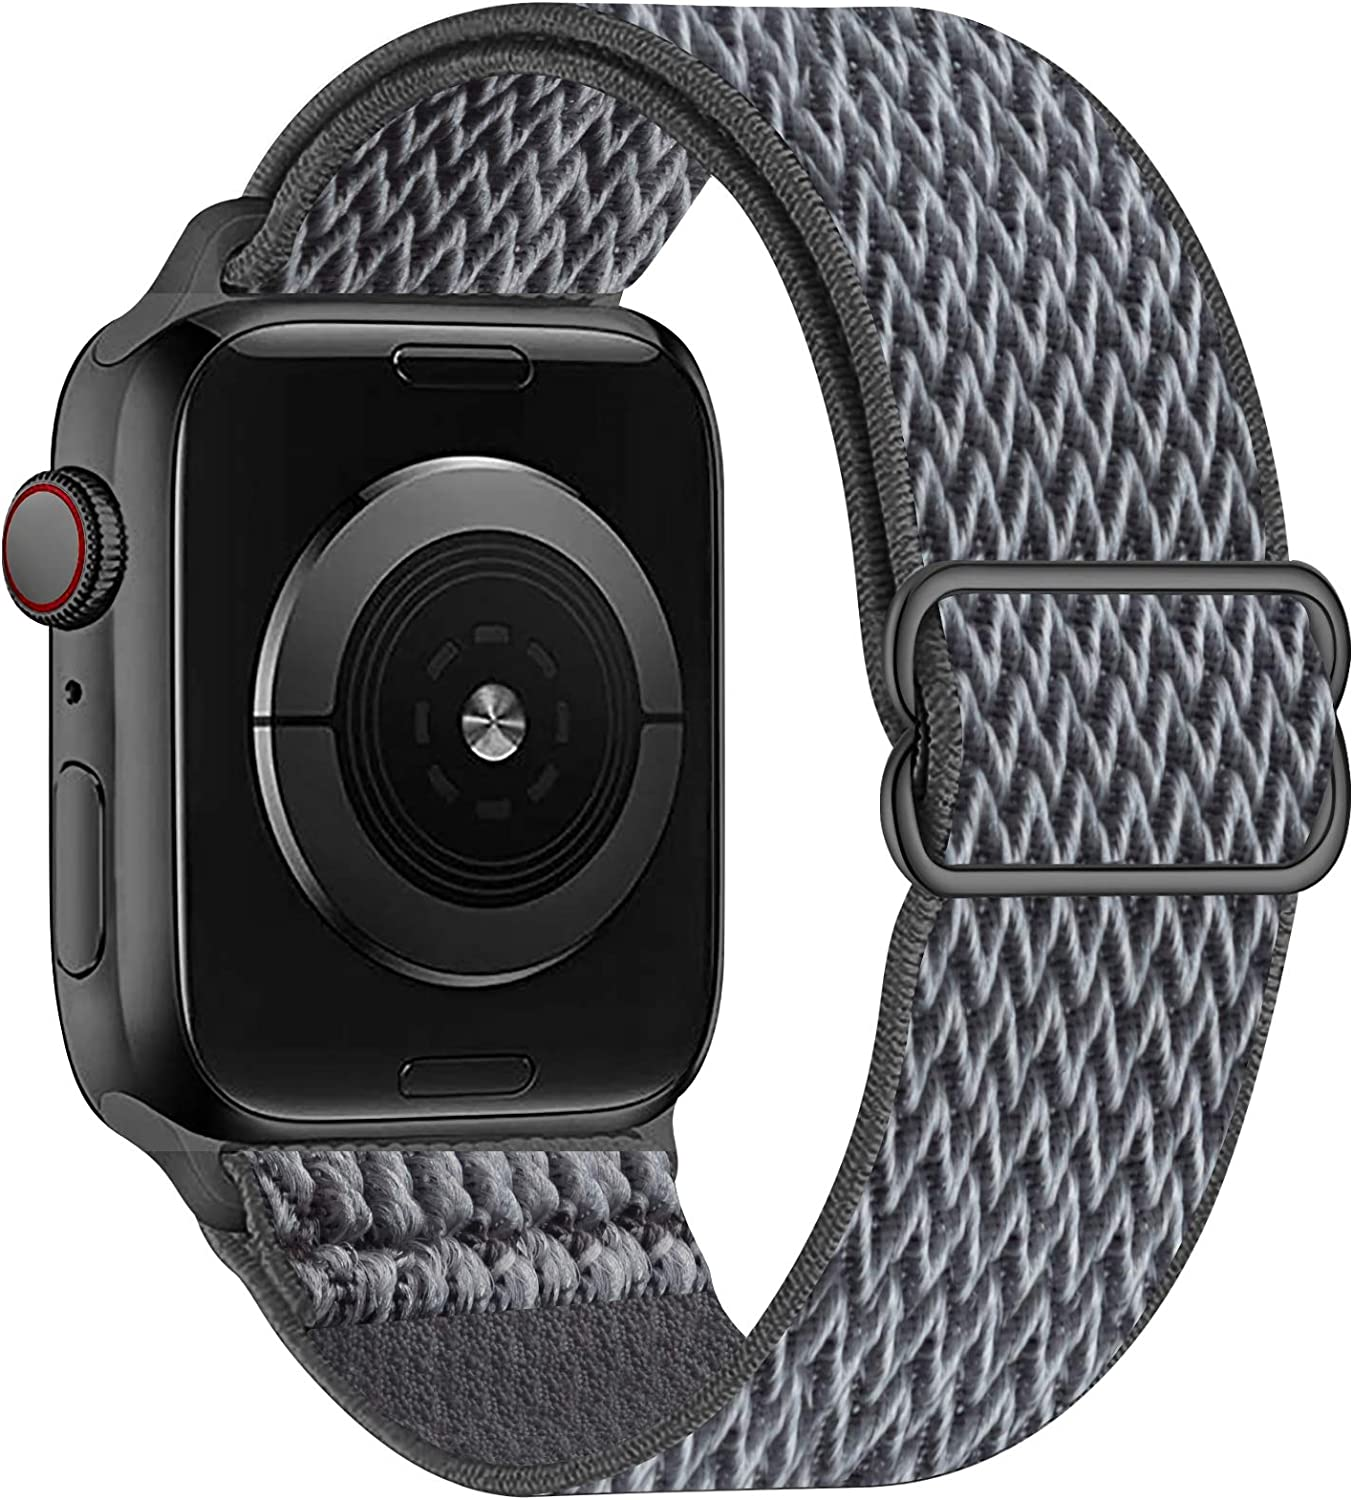 OHCBOOGIE Stretchy Solo Loop Strap Compatible with Apple Watch Bands 38mm 40mm 42mm 44mm ,Adjustable Stretch Braided Sport Elastics Weave Nylon Women Men Wristband Compatible with iWatch Series 6/5/4/3/2/1 SE,Storm Gray,42/44mm